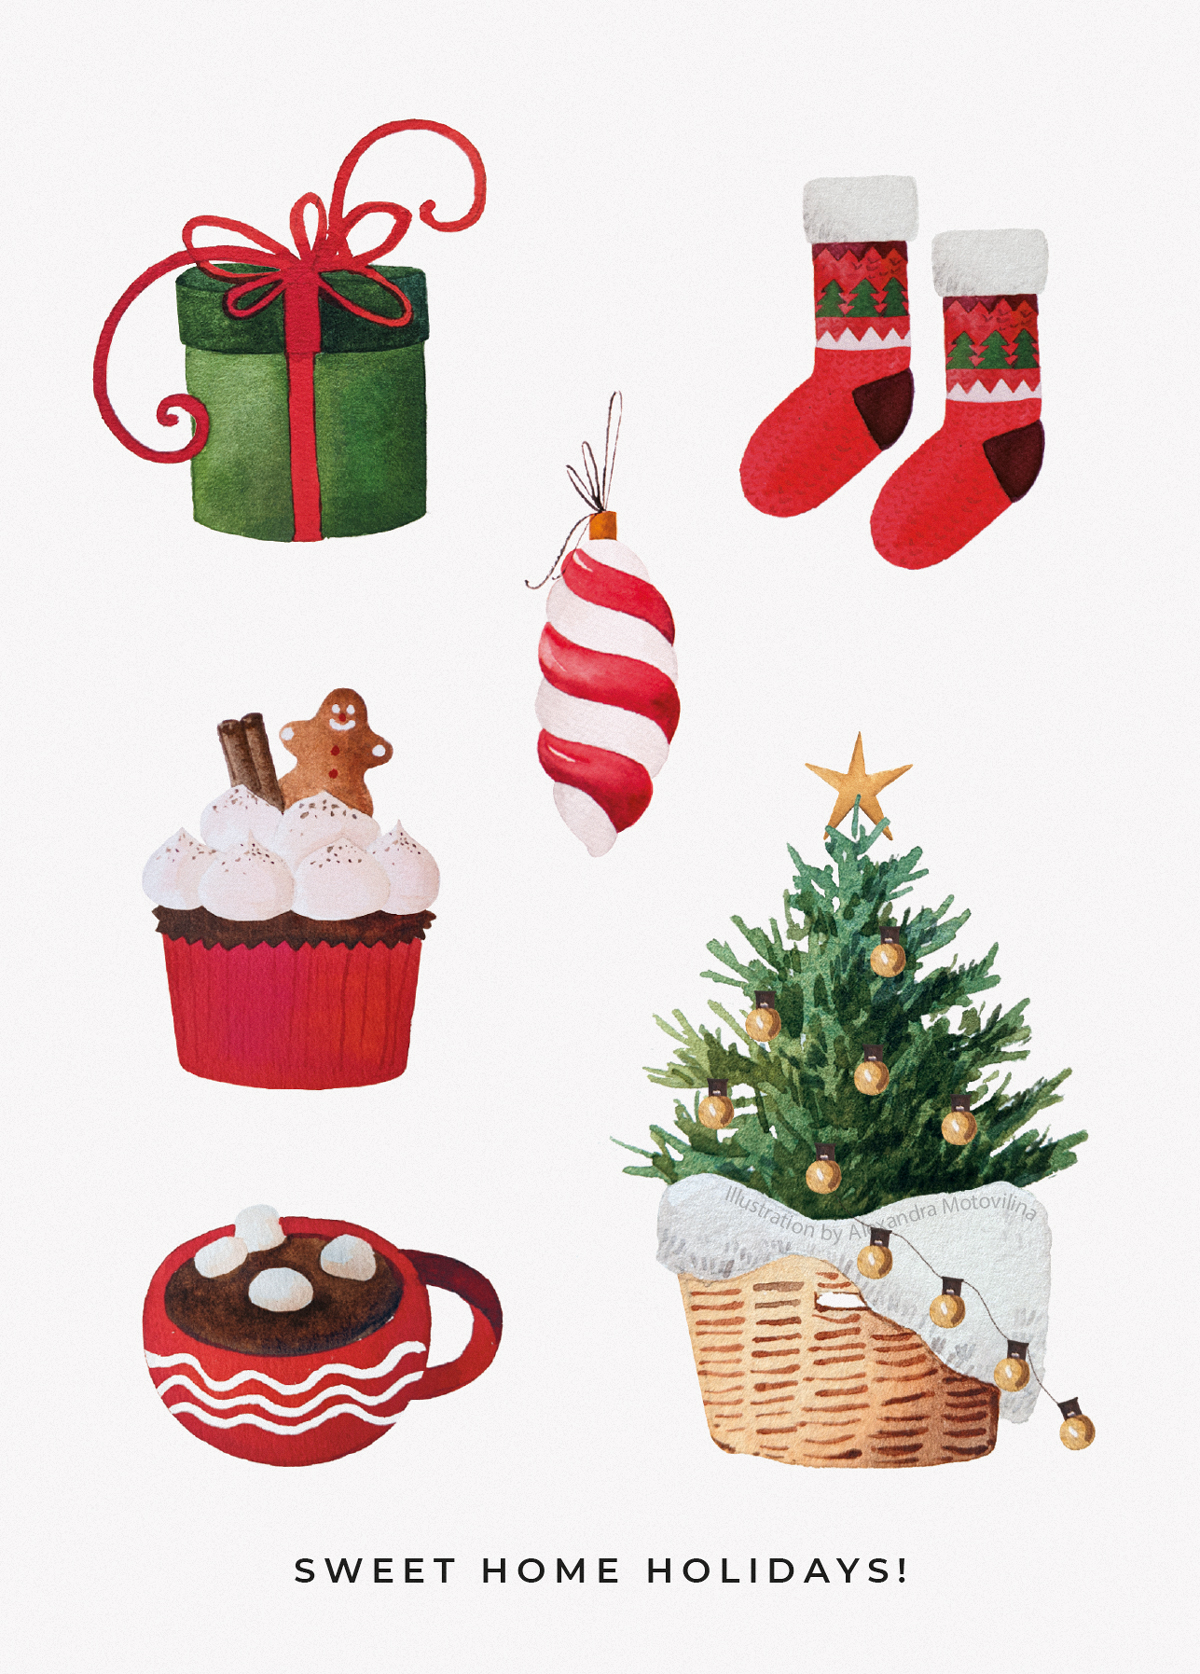 Alexandra-Motovilina_Christmas-Illustration_Sweet-Home-Holidays